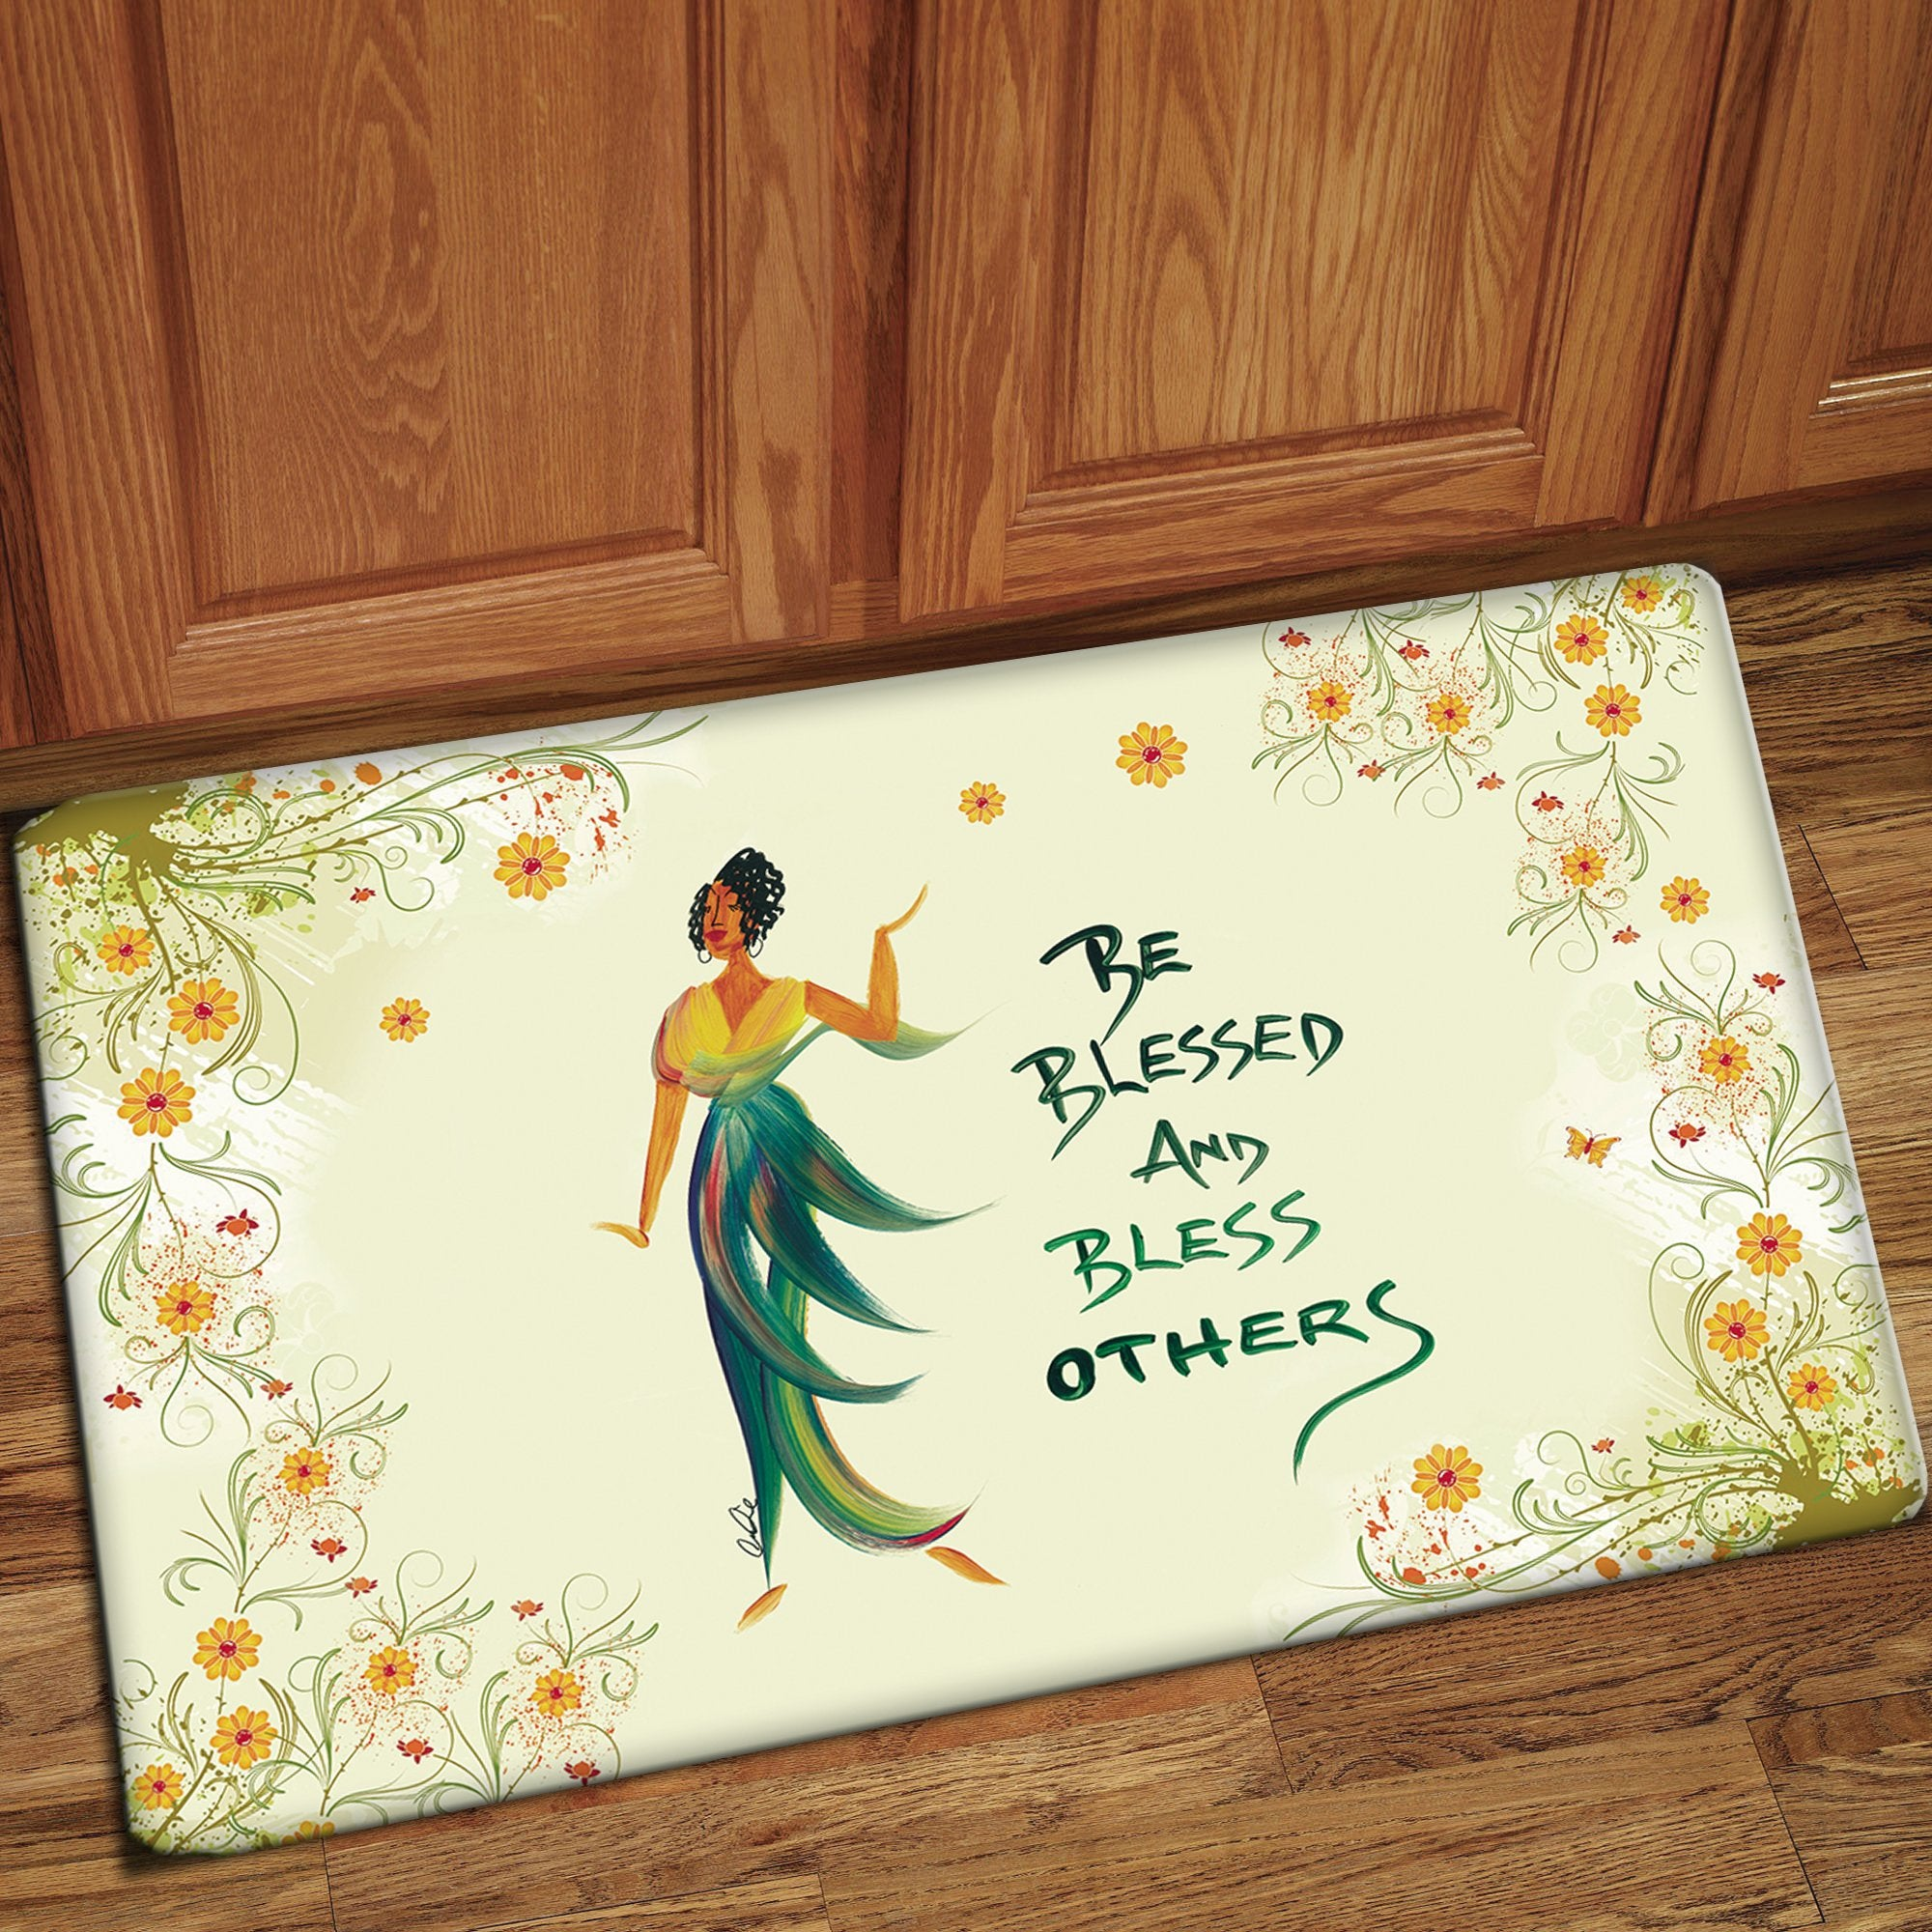 Be Blessed & Bless Others: African American Interior Floor Mat by Cidne Wallace